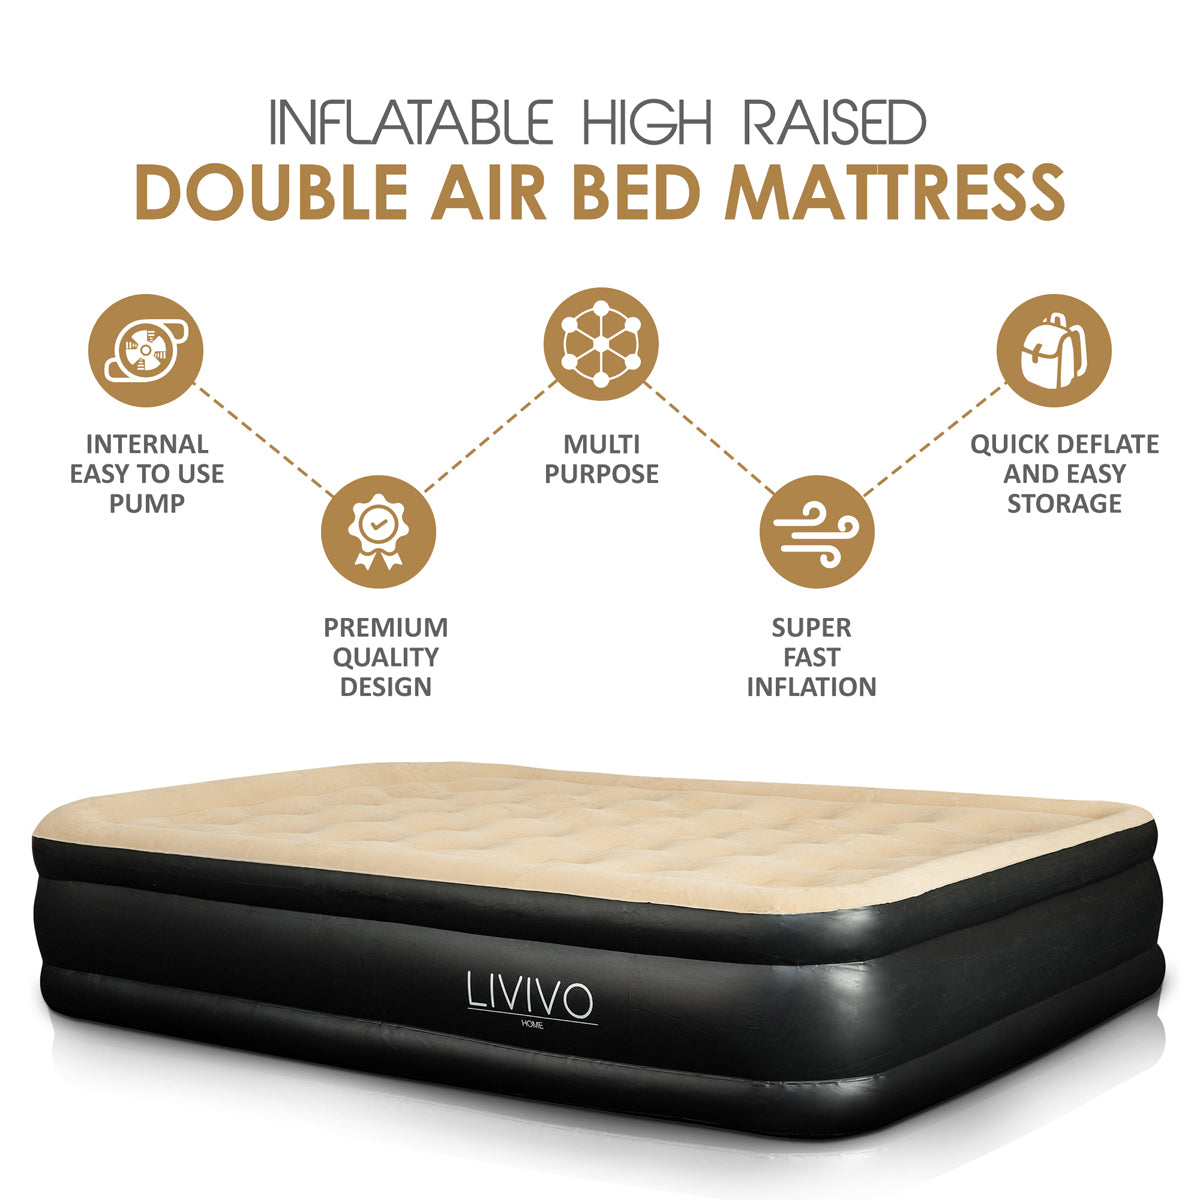 LIVIVO DOUBLE HIGH RAISED AIR BED